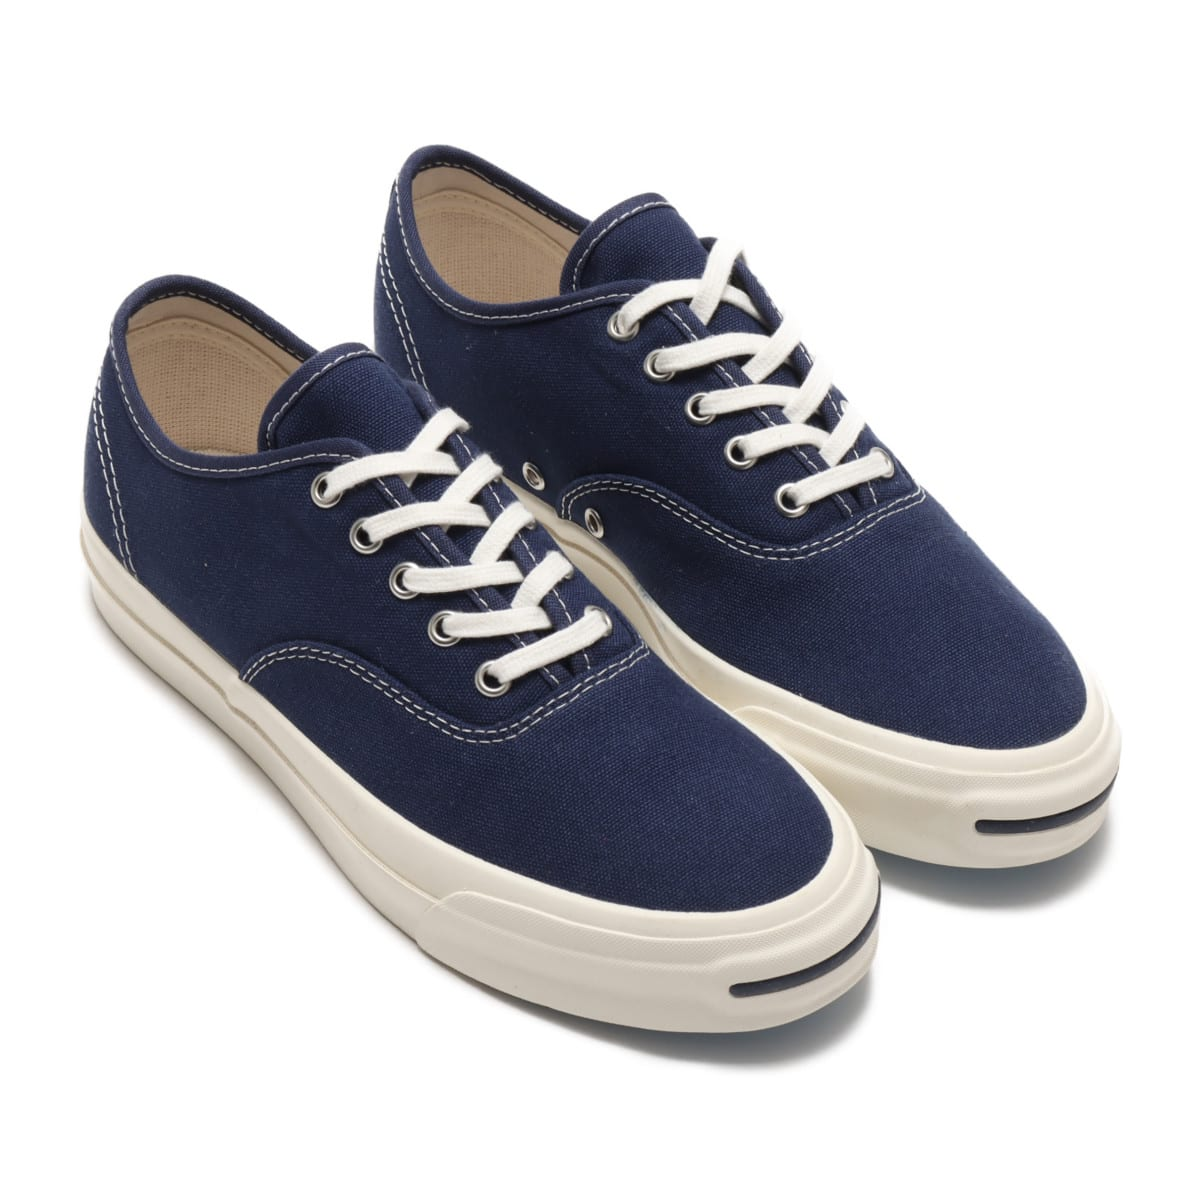 CONVERSE JACK PURCELL RET BM NAVY 21SS-I_photo_large